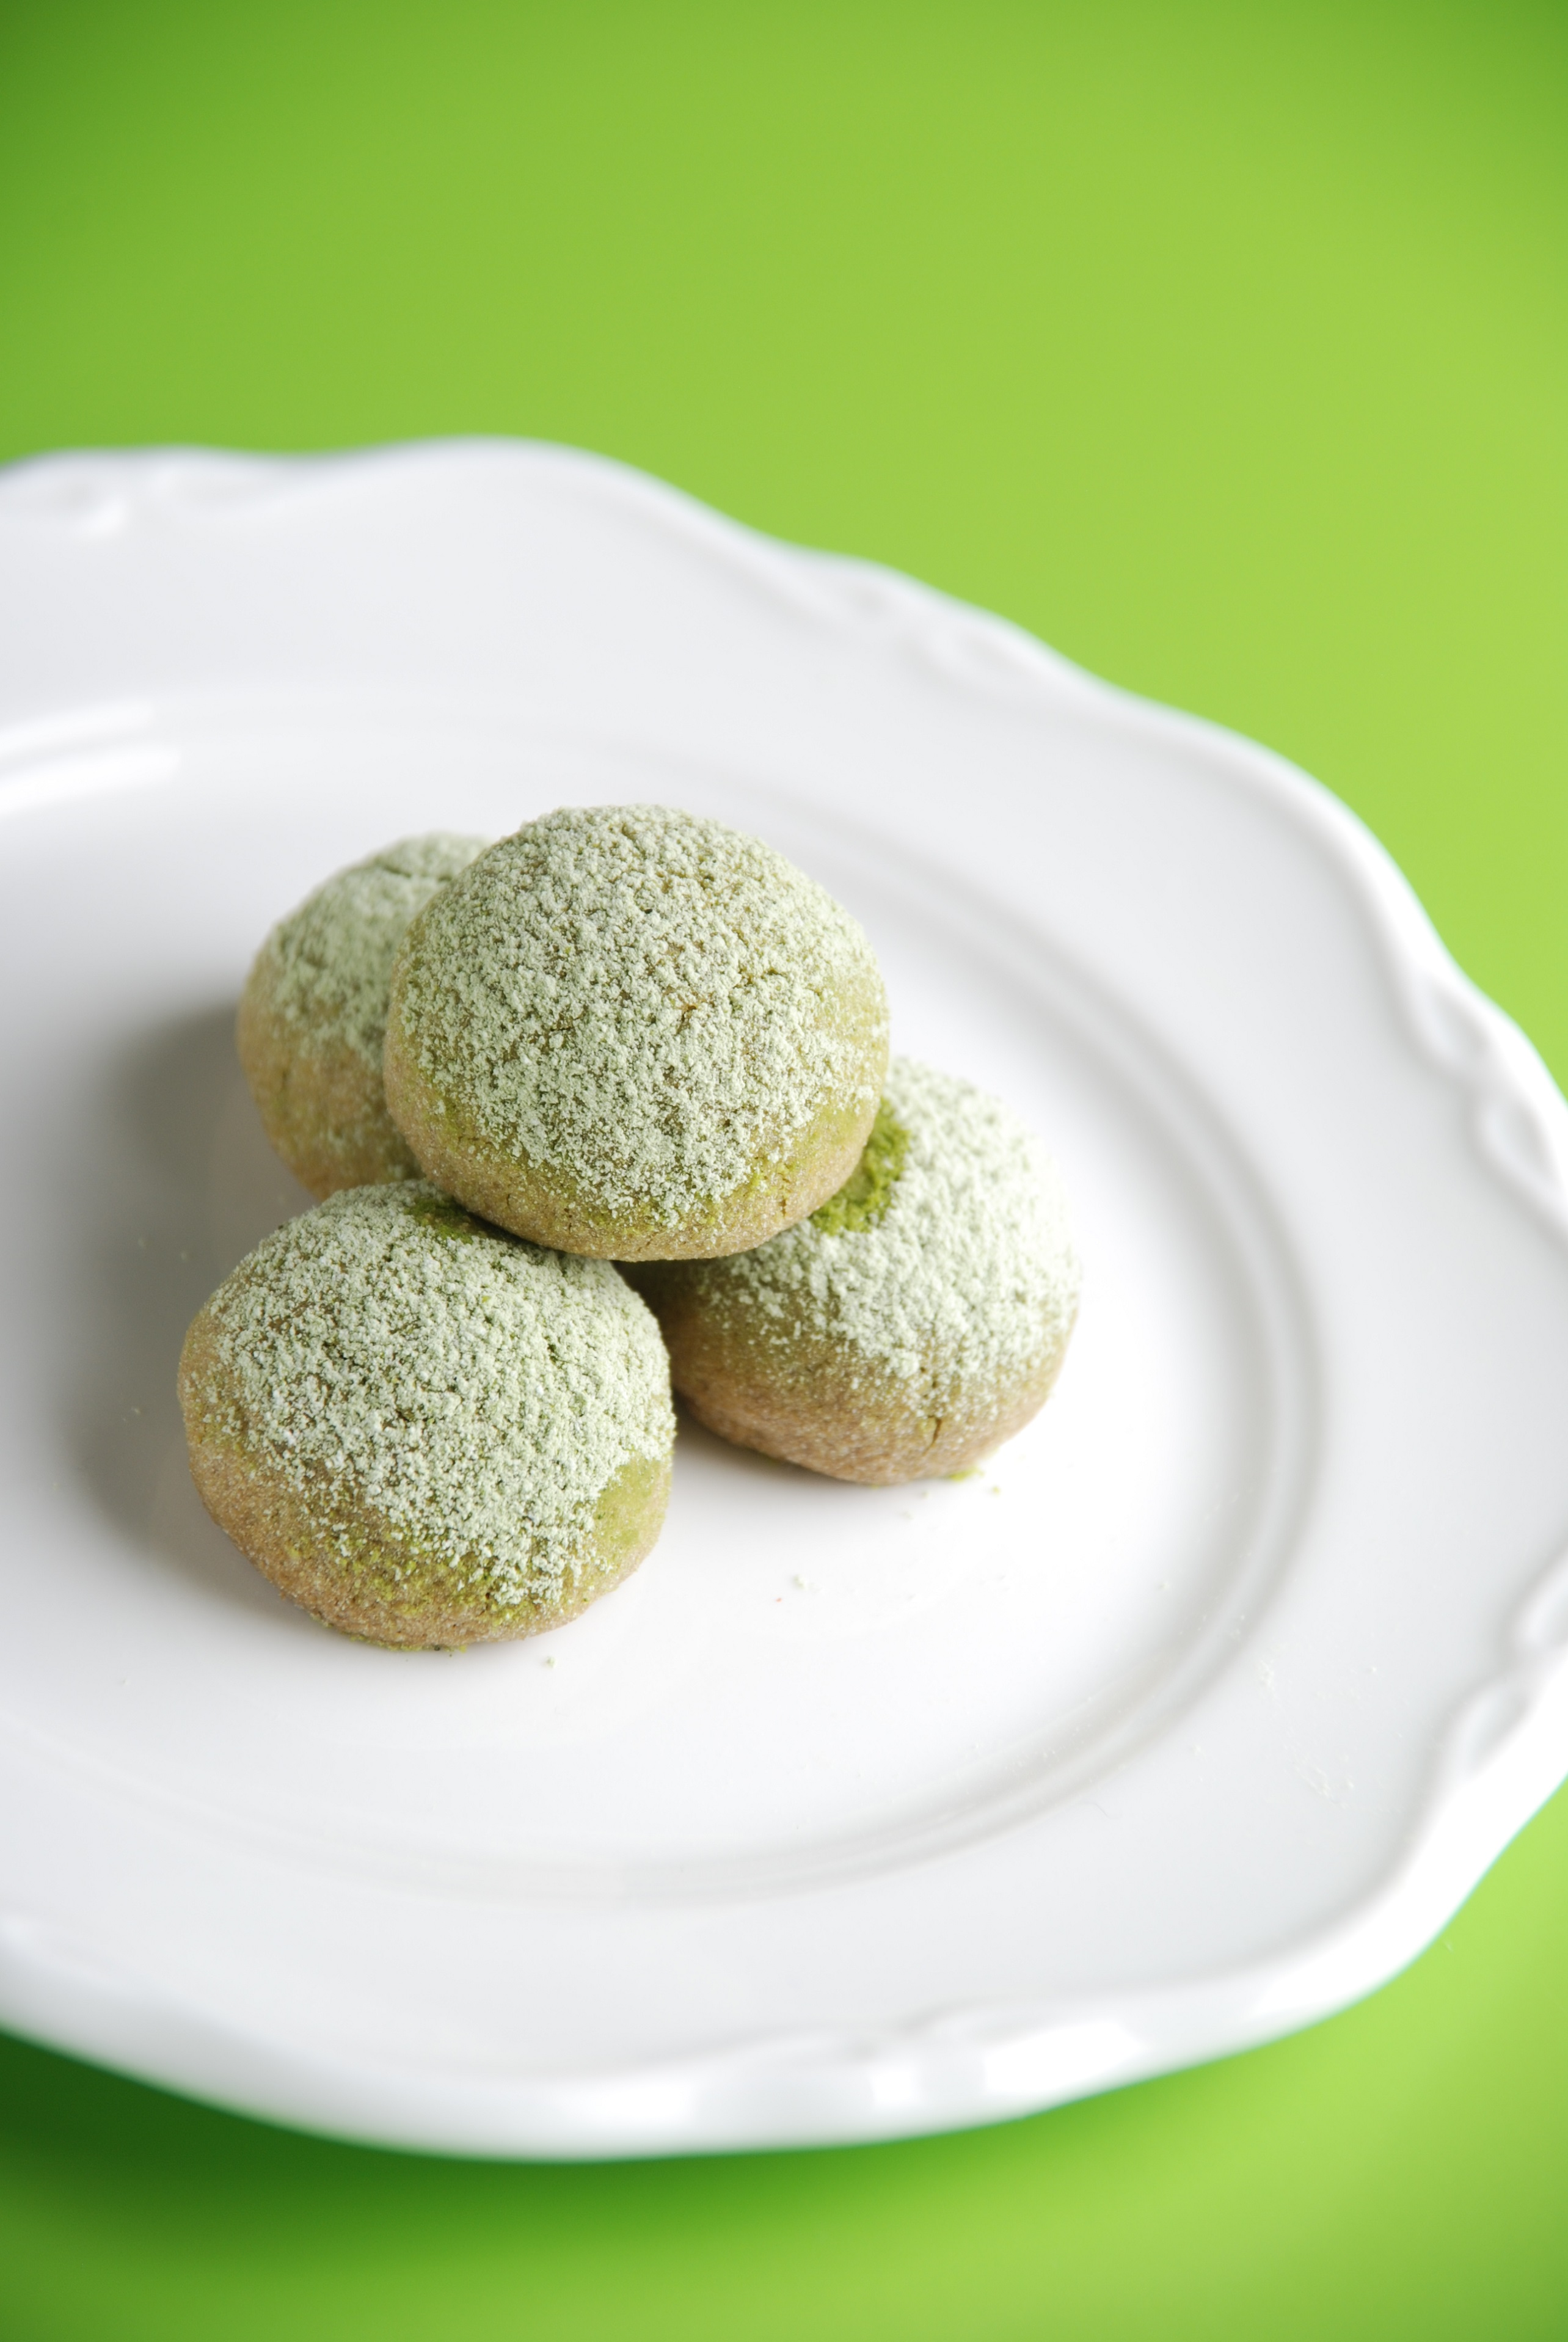 sables-the-vert%e6%8a%b9%e8%8c%b6%ef%bd%bb%ef%be%8c%ef%be%9e%ef%be%9a